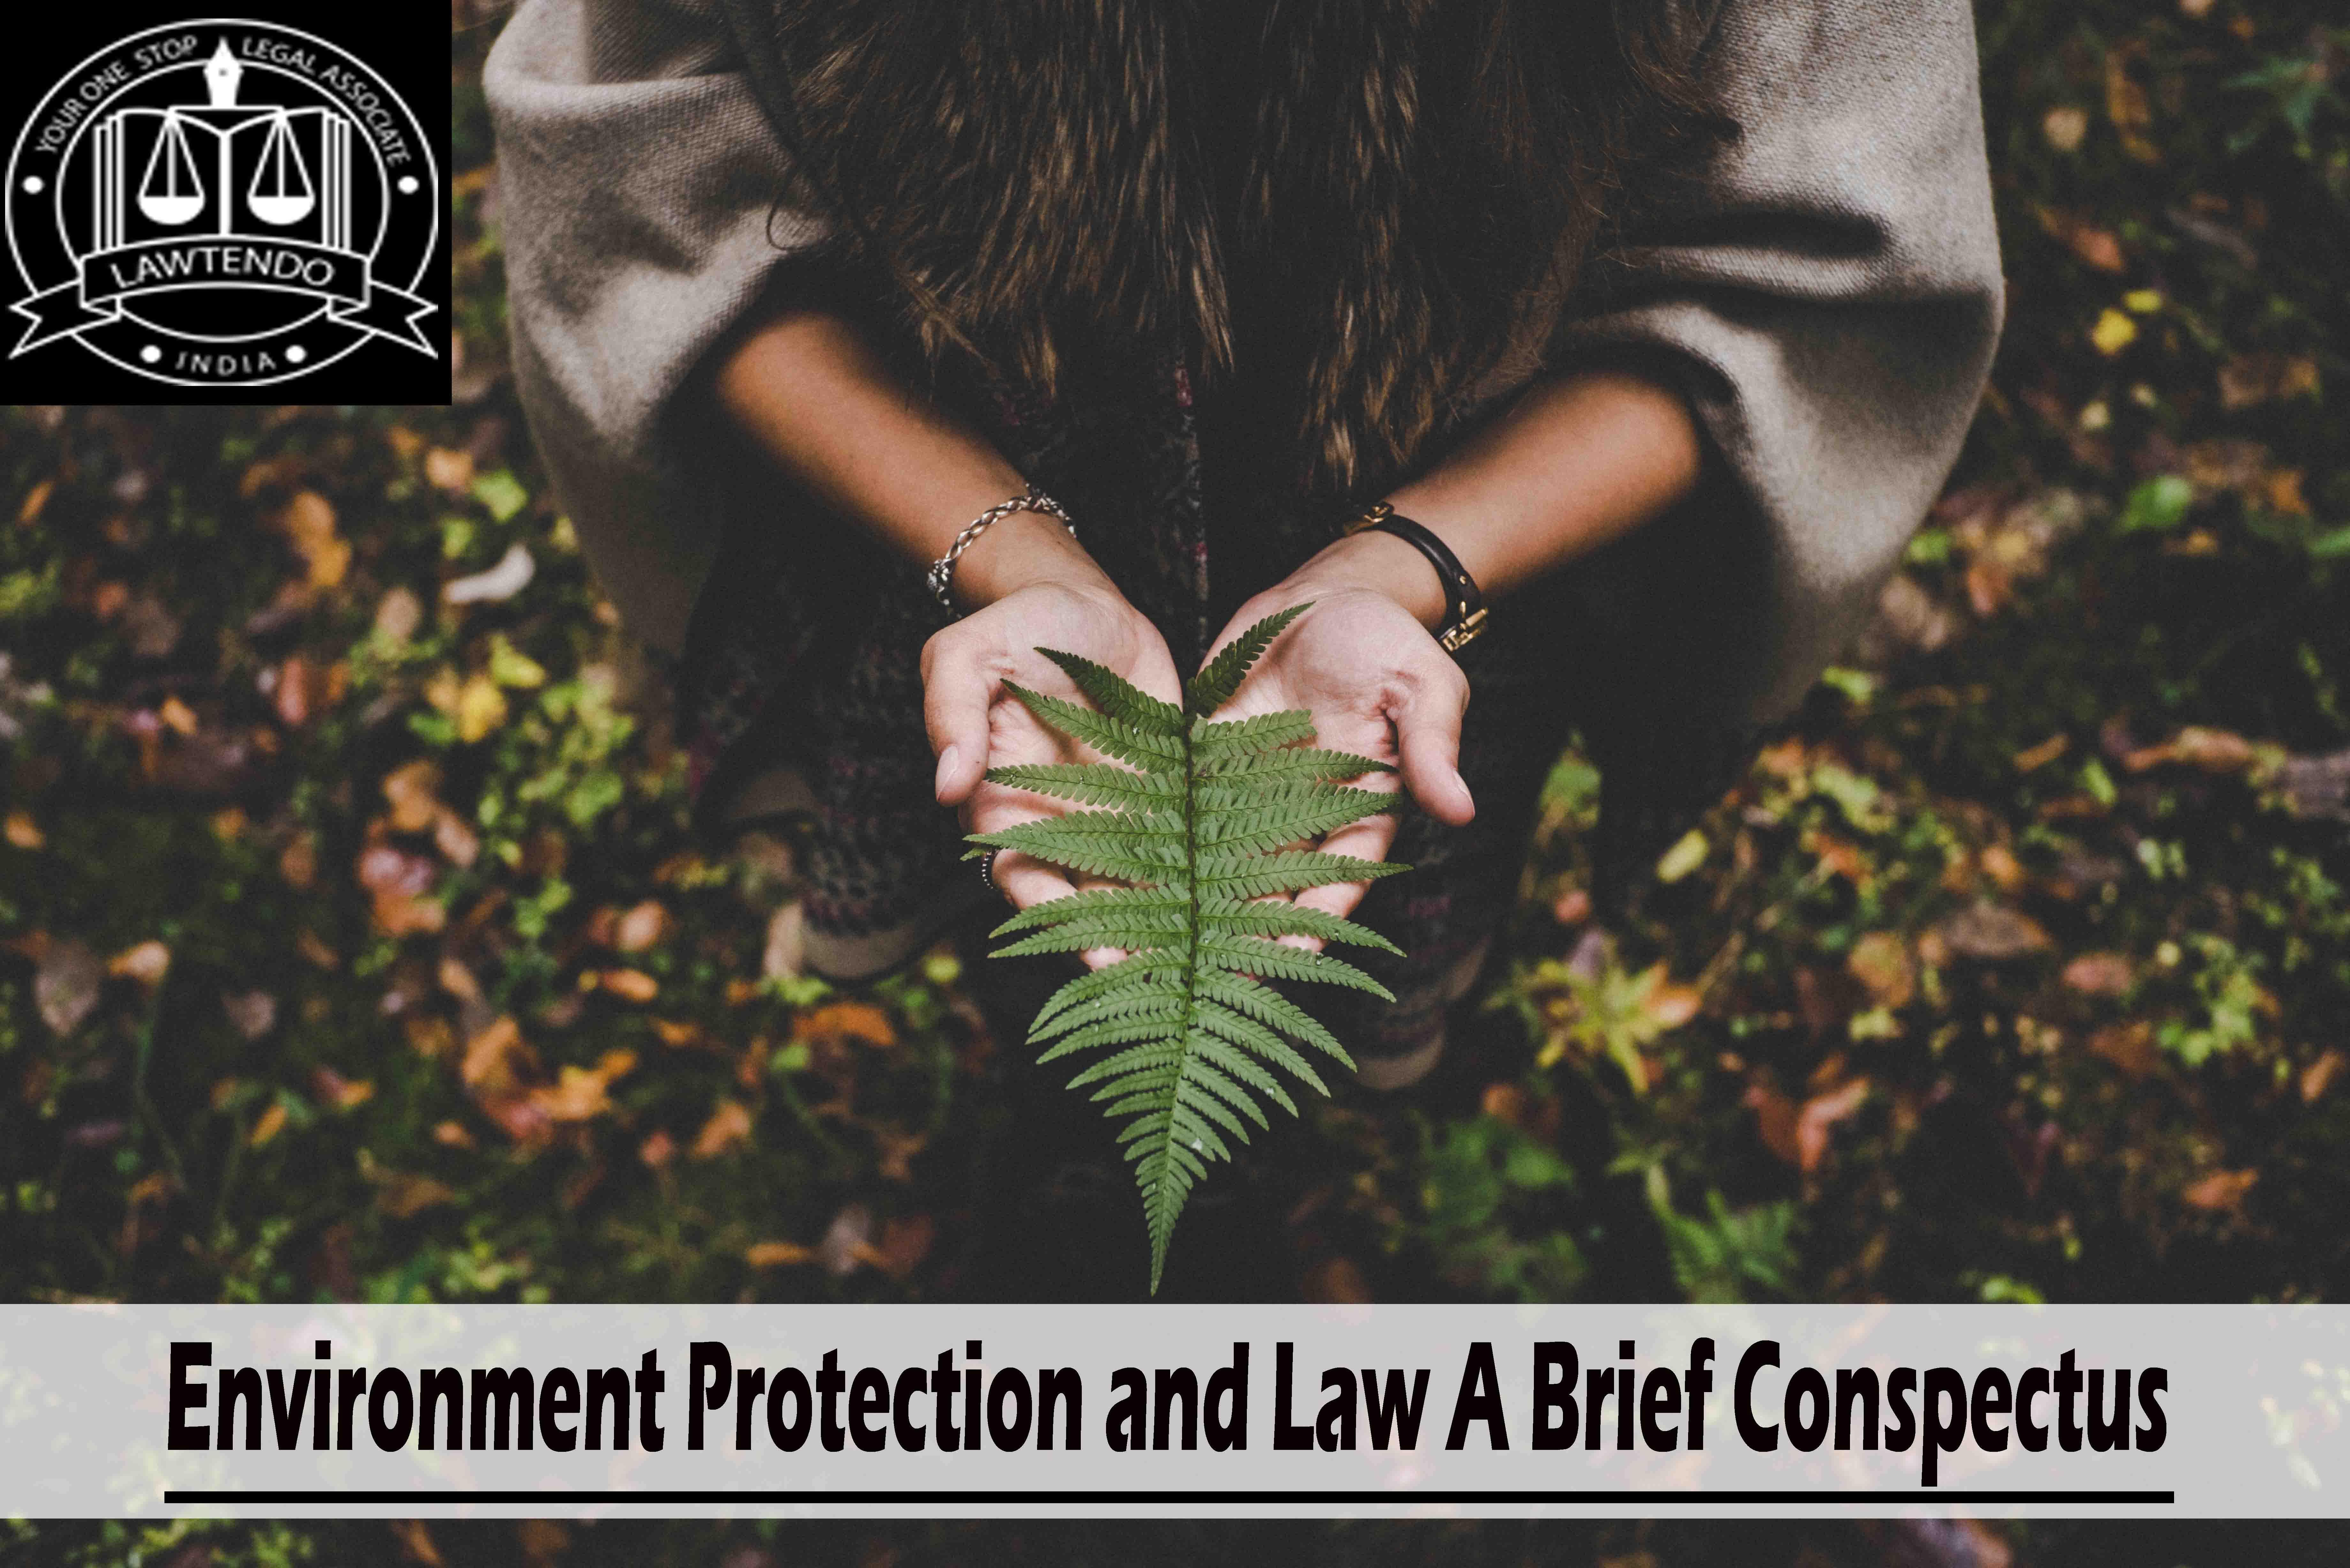 Environment Protection and Law A Brief Conspectus